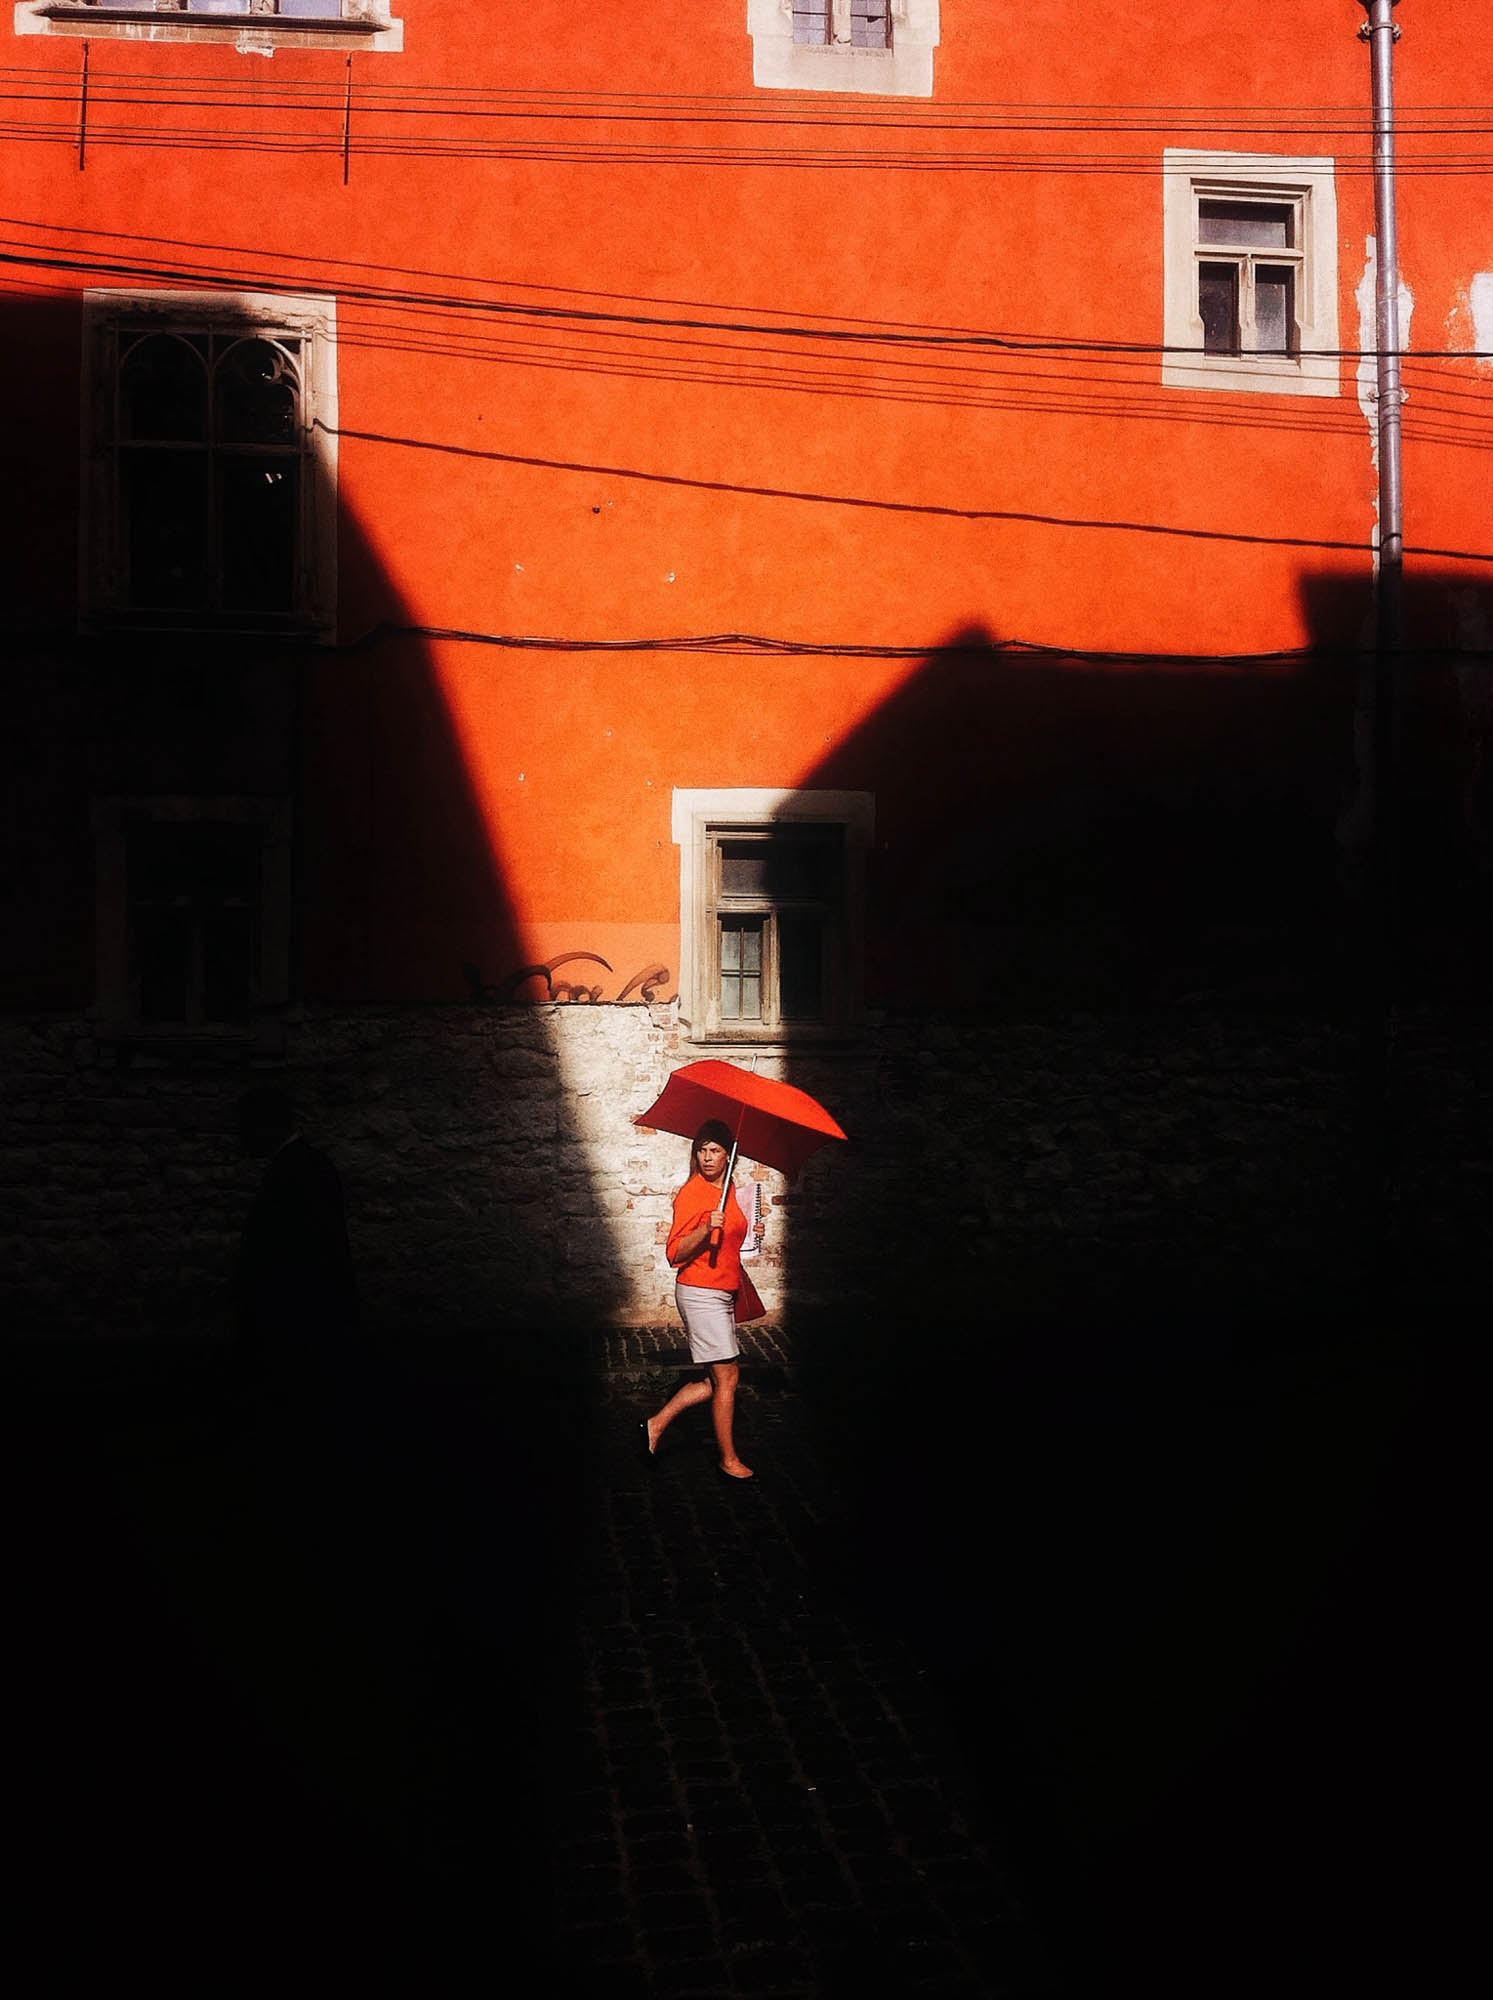 A woman dressed in a red coat walking down the street holding an red umbrella against a red wall in contrast with the black shadow.